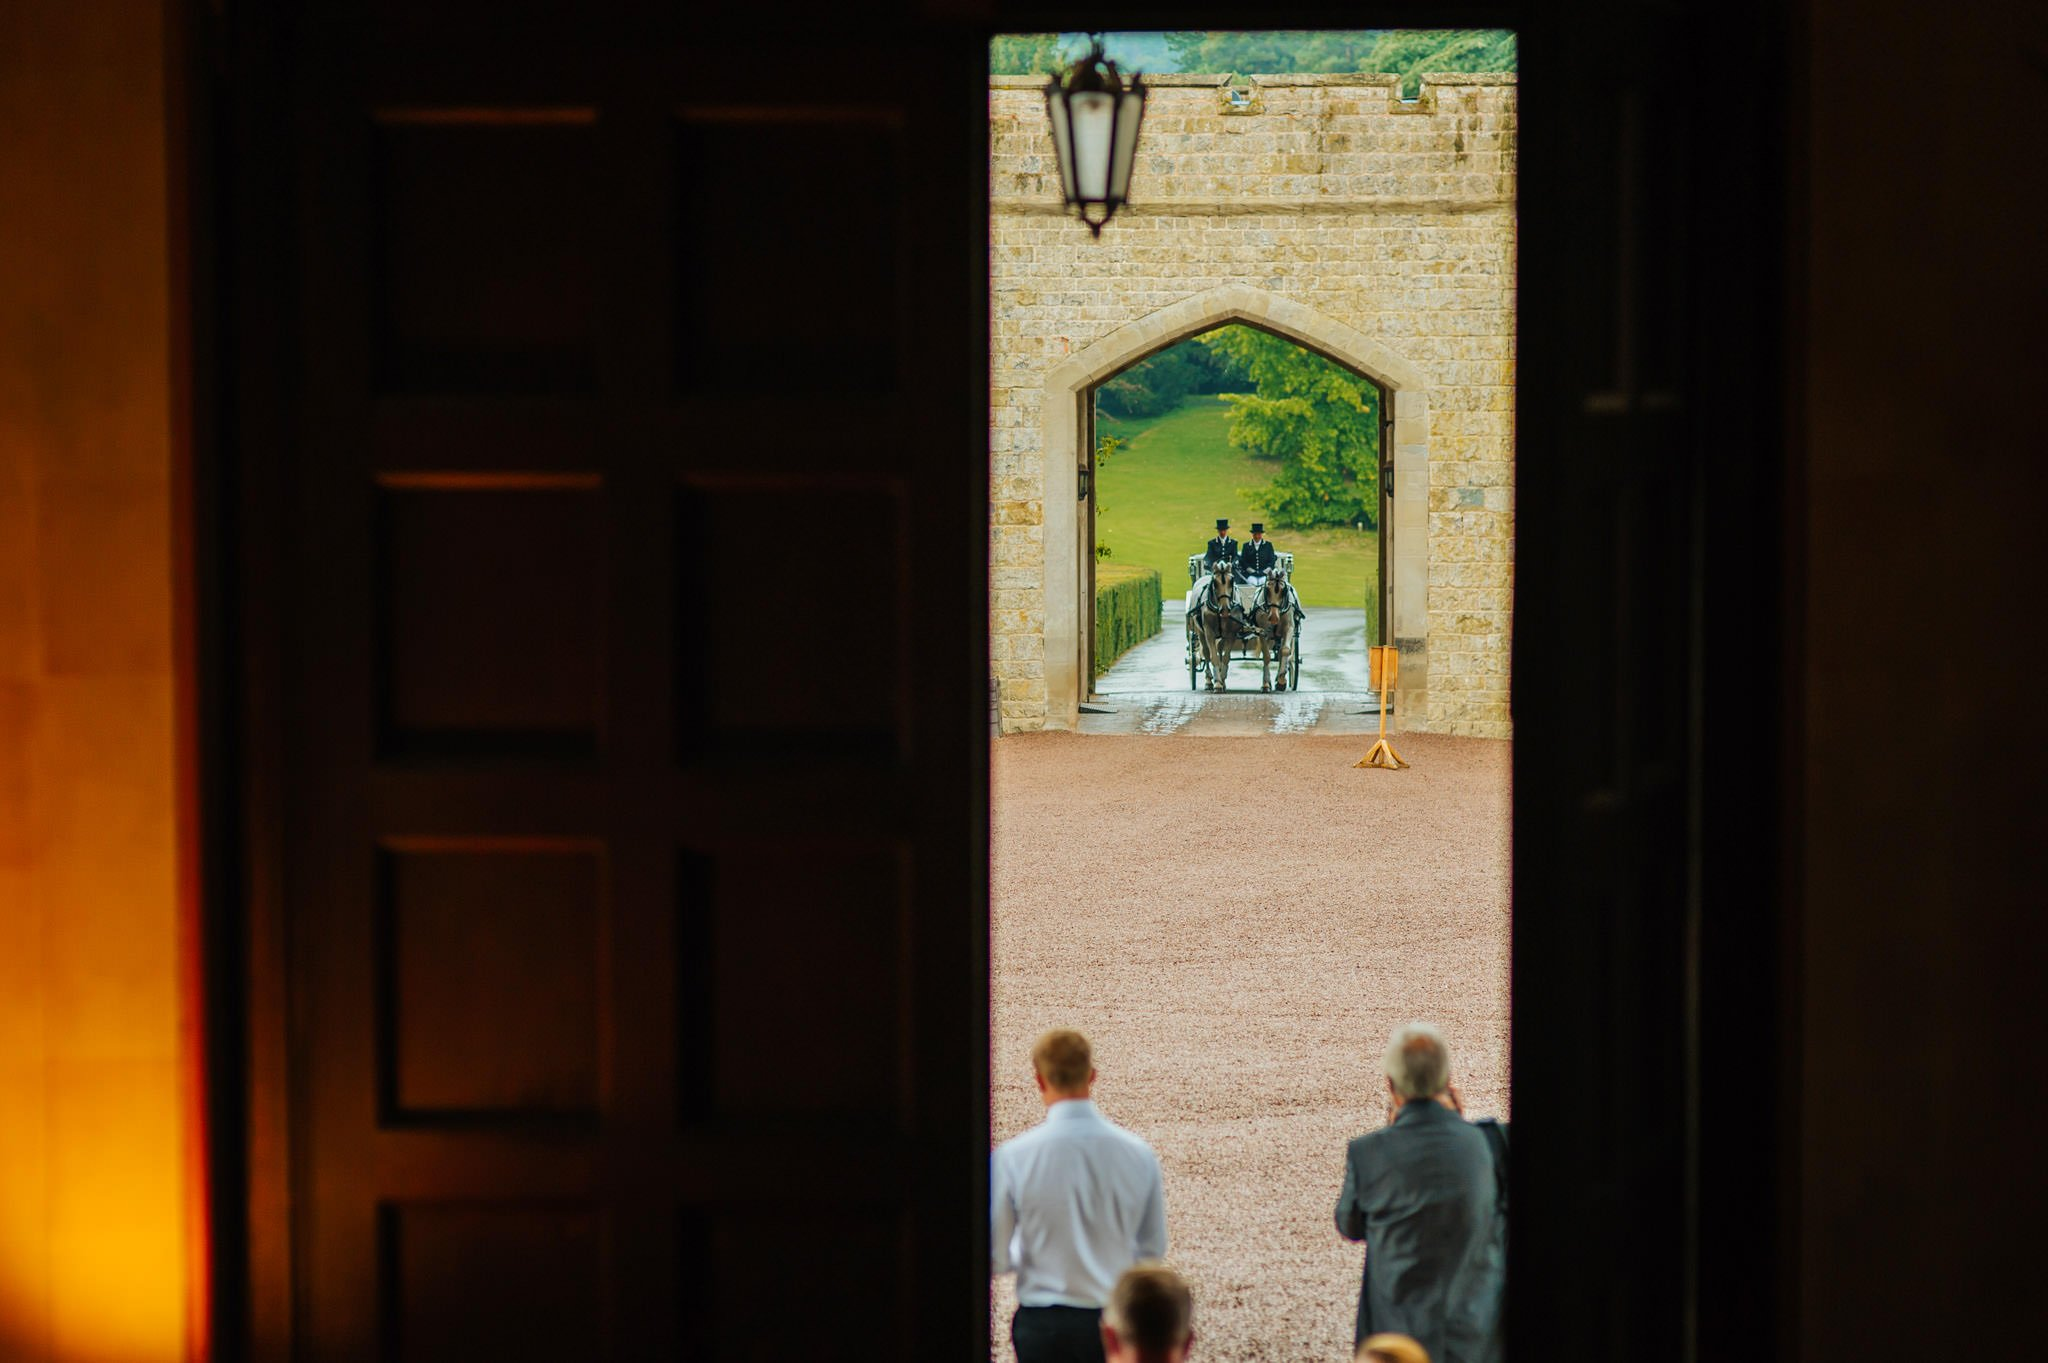 eastnor castle wedding pictures 51 - Eastnor Castle wedding photographer Herefordshire, West Midlands - Sarah + Dean